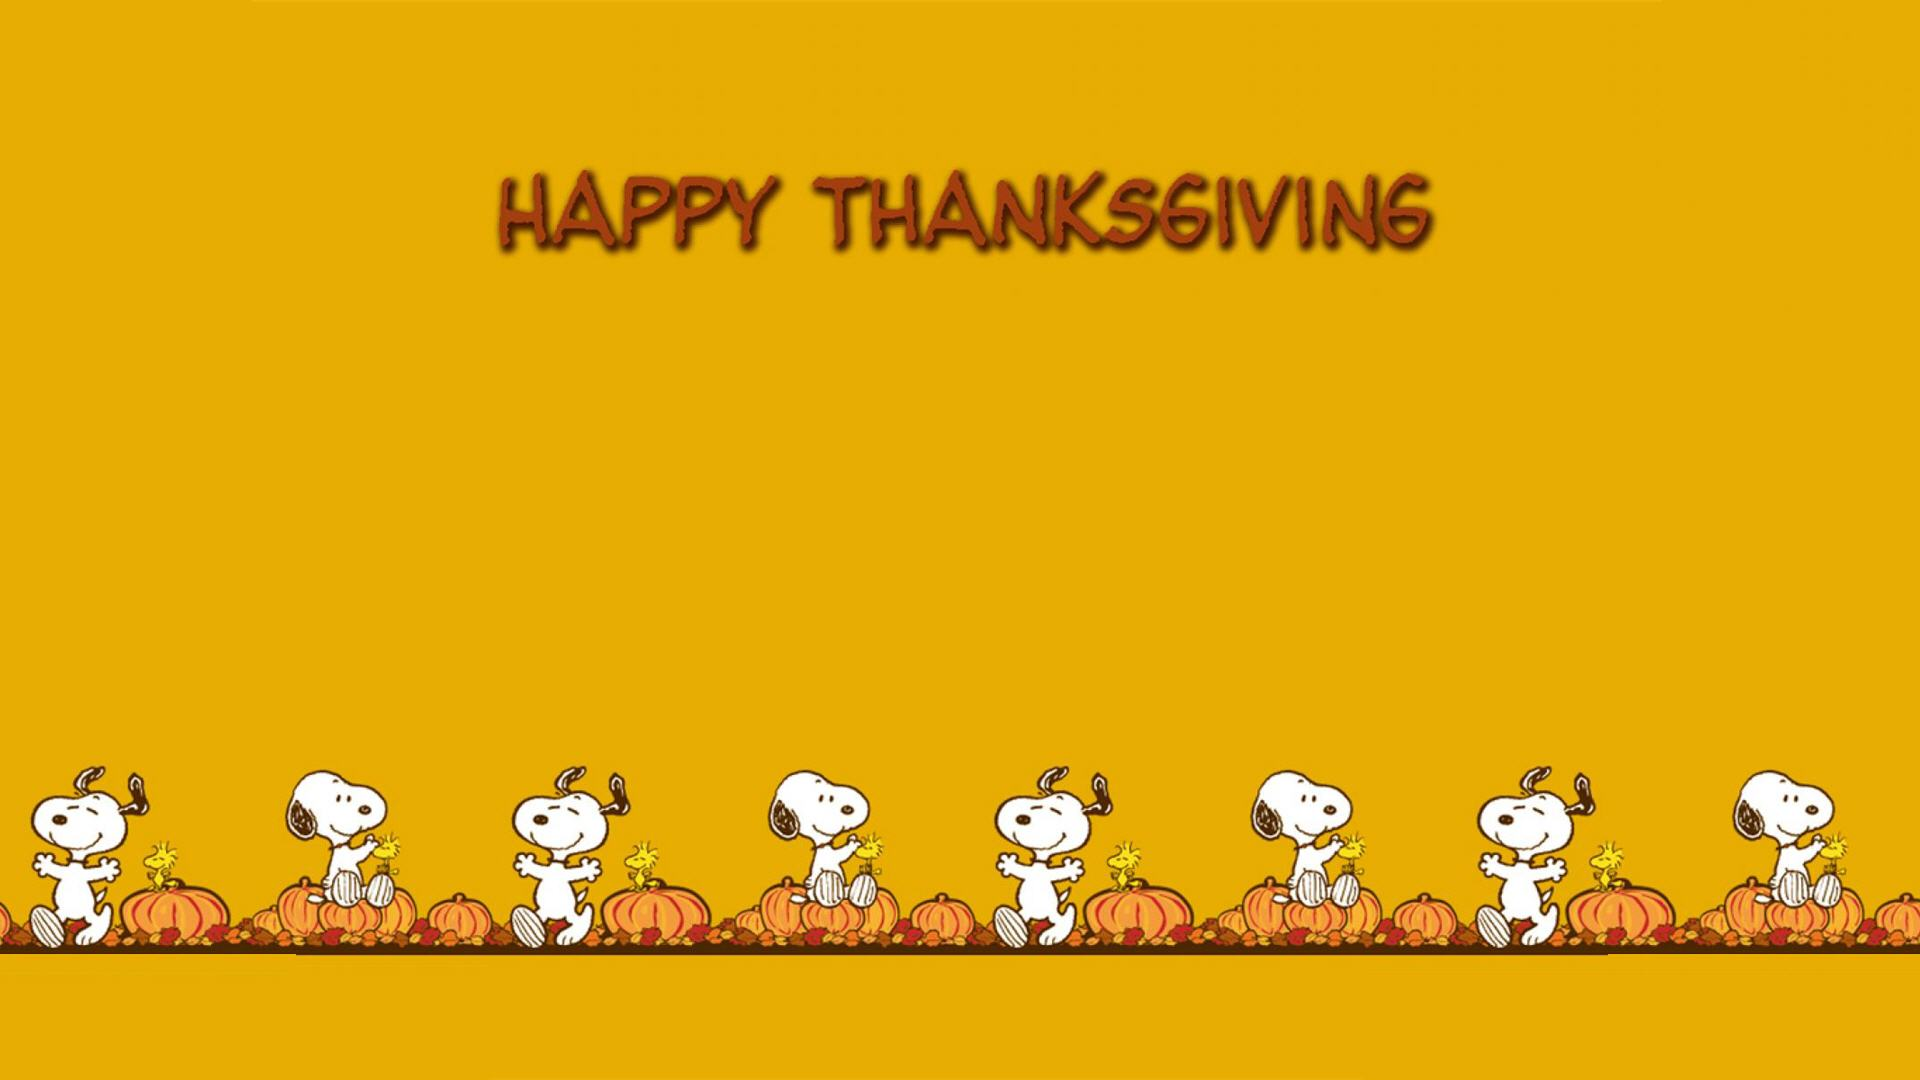 Thanksgiving Snoopy Wallpapers  Wallpaper  1920x1080